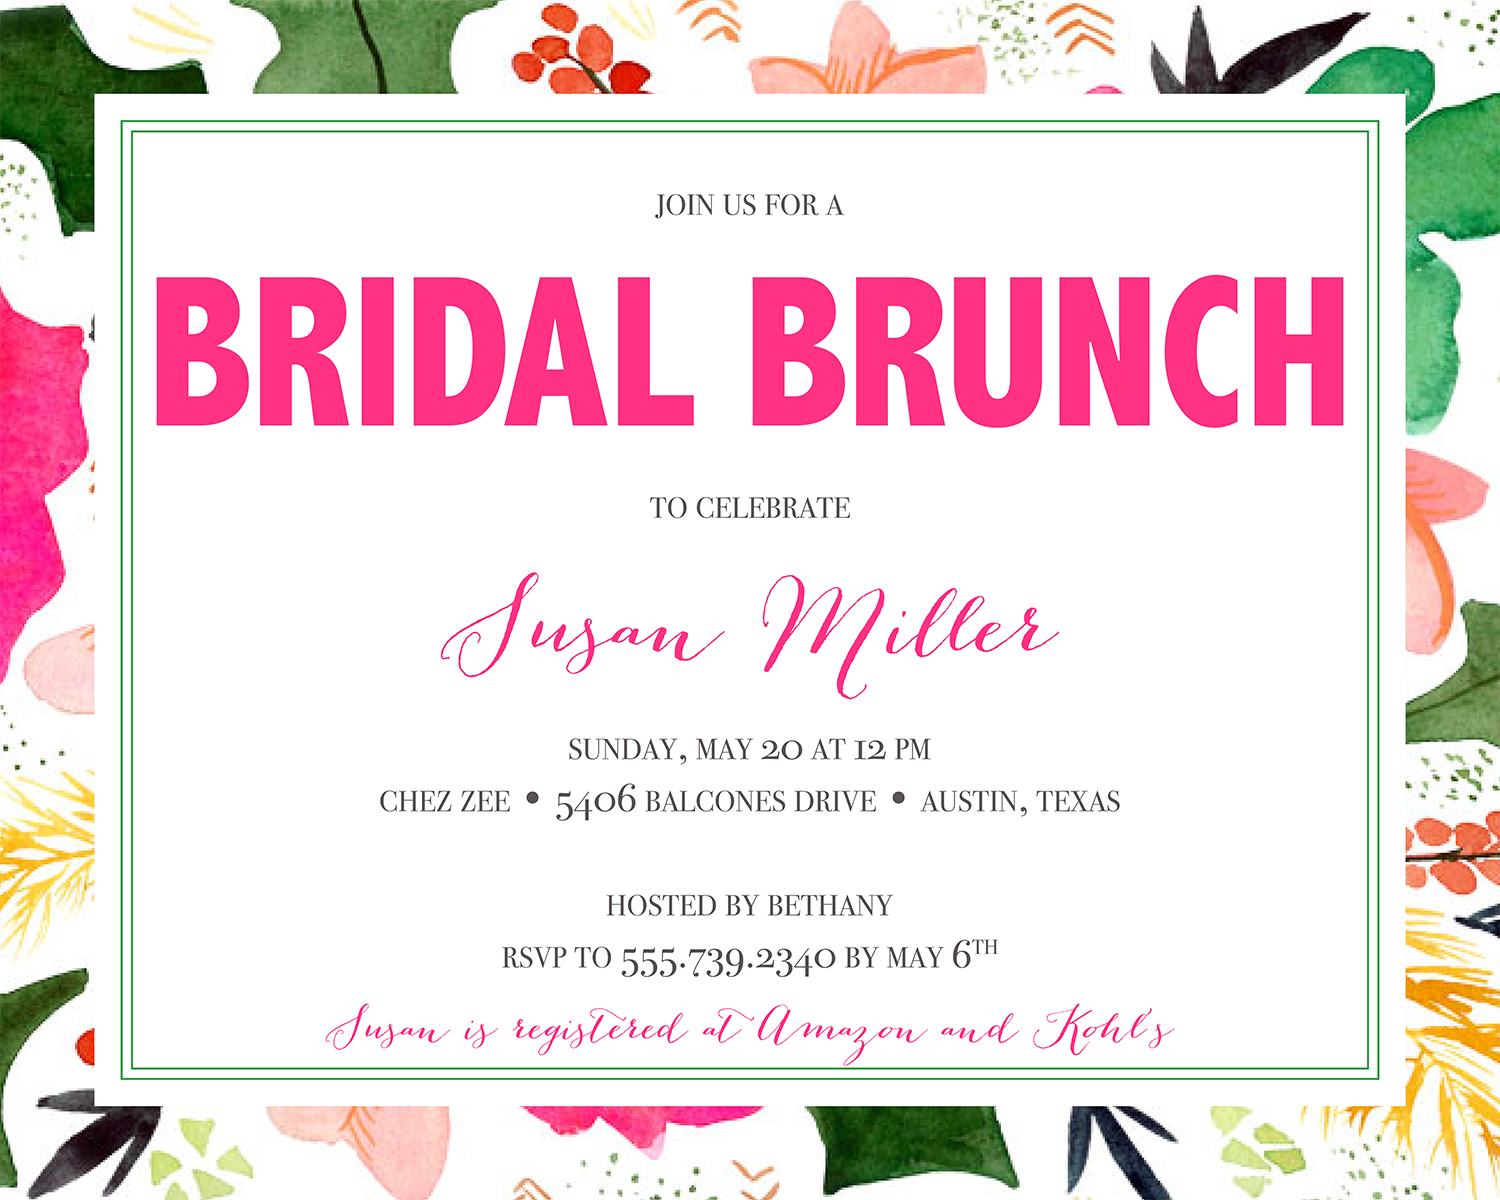 Bridal shower invitation wording ideas and etiquette filmwisefo